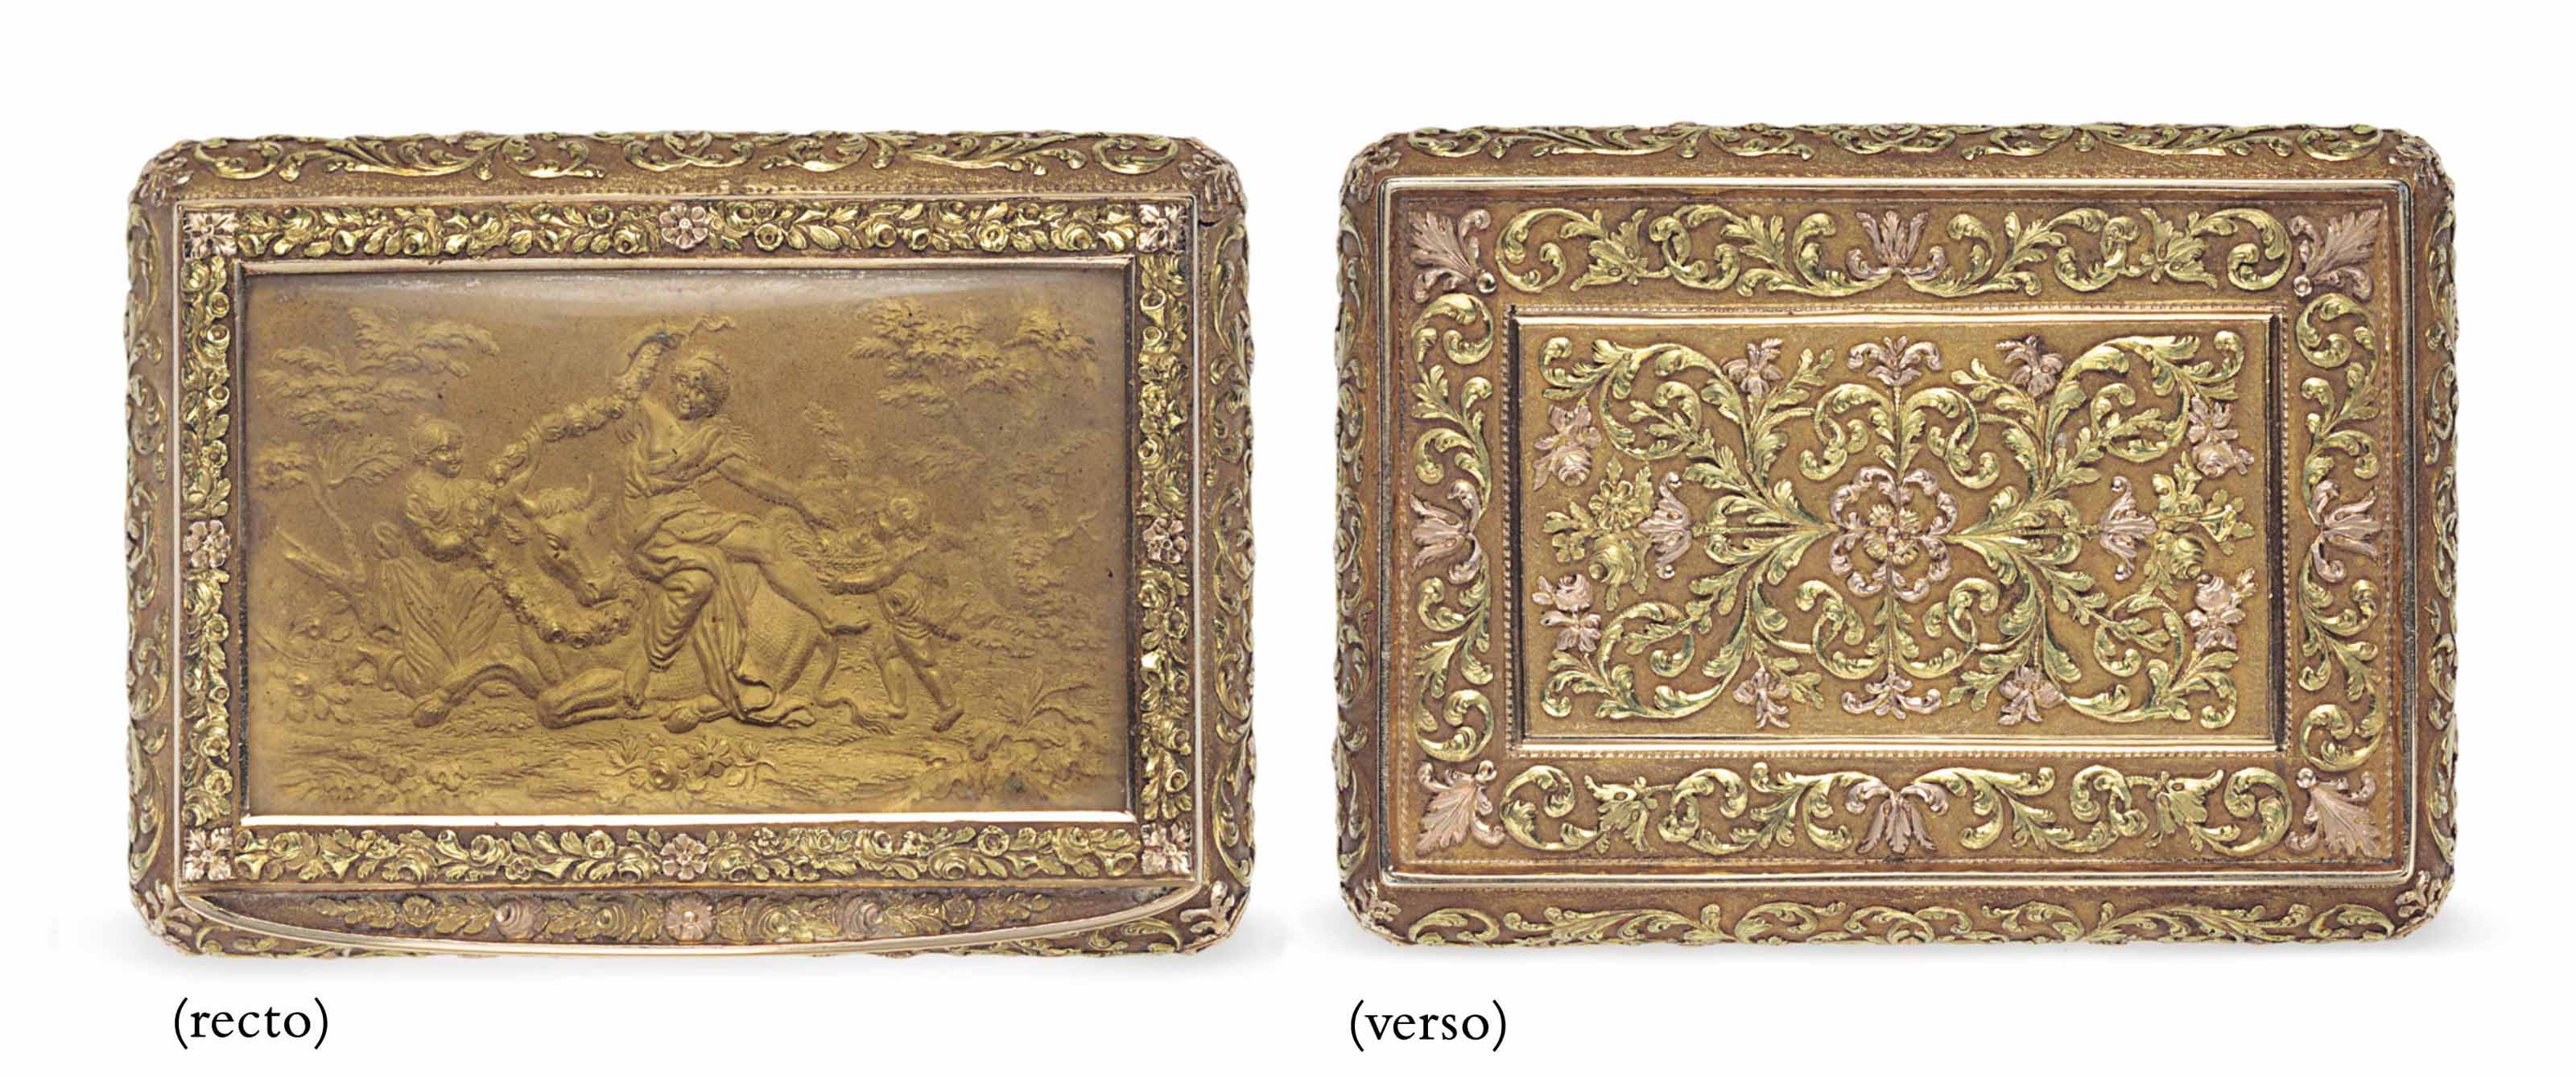 A SWISS VARI-COLORED GOLD BOX